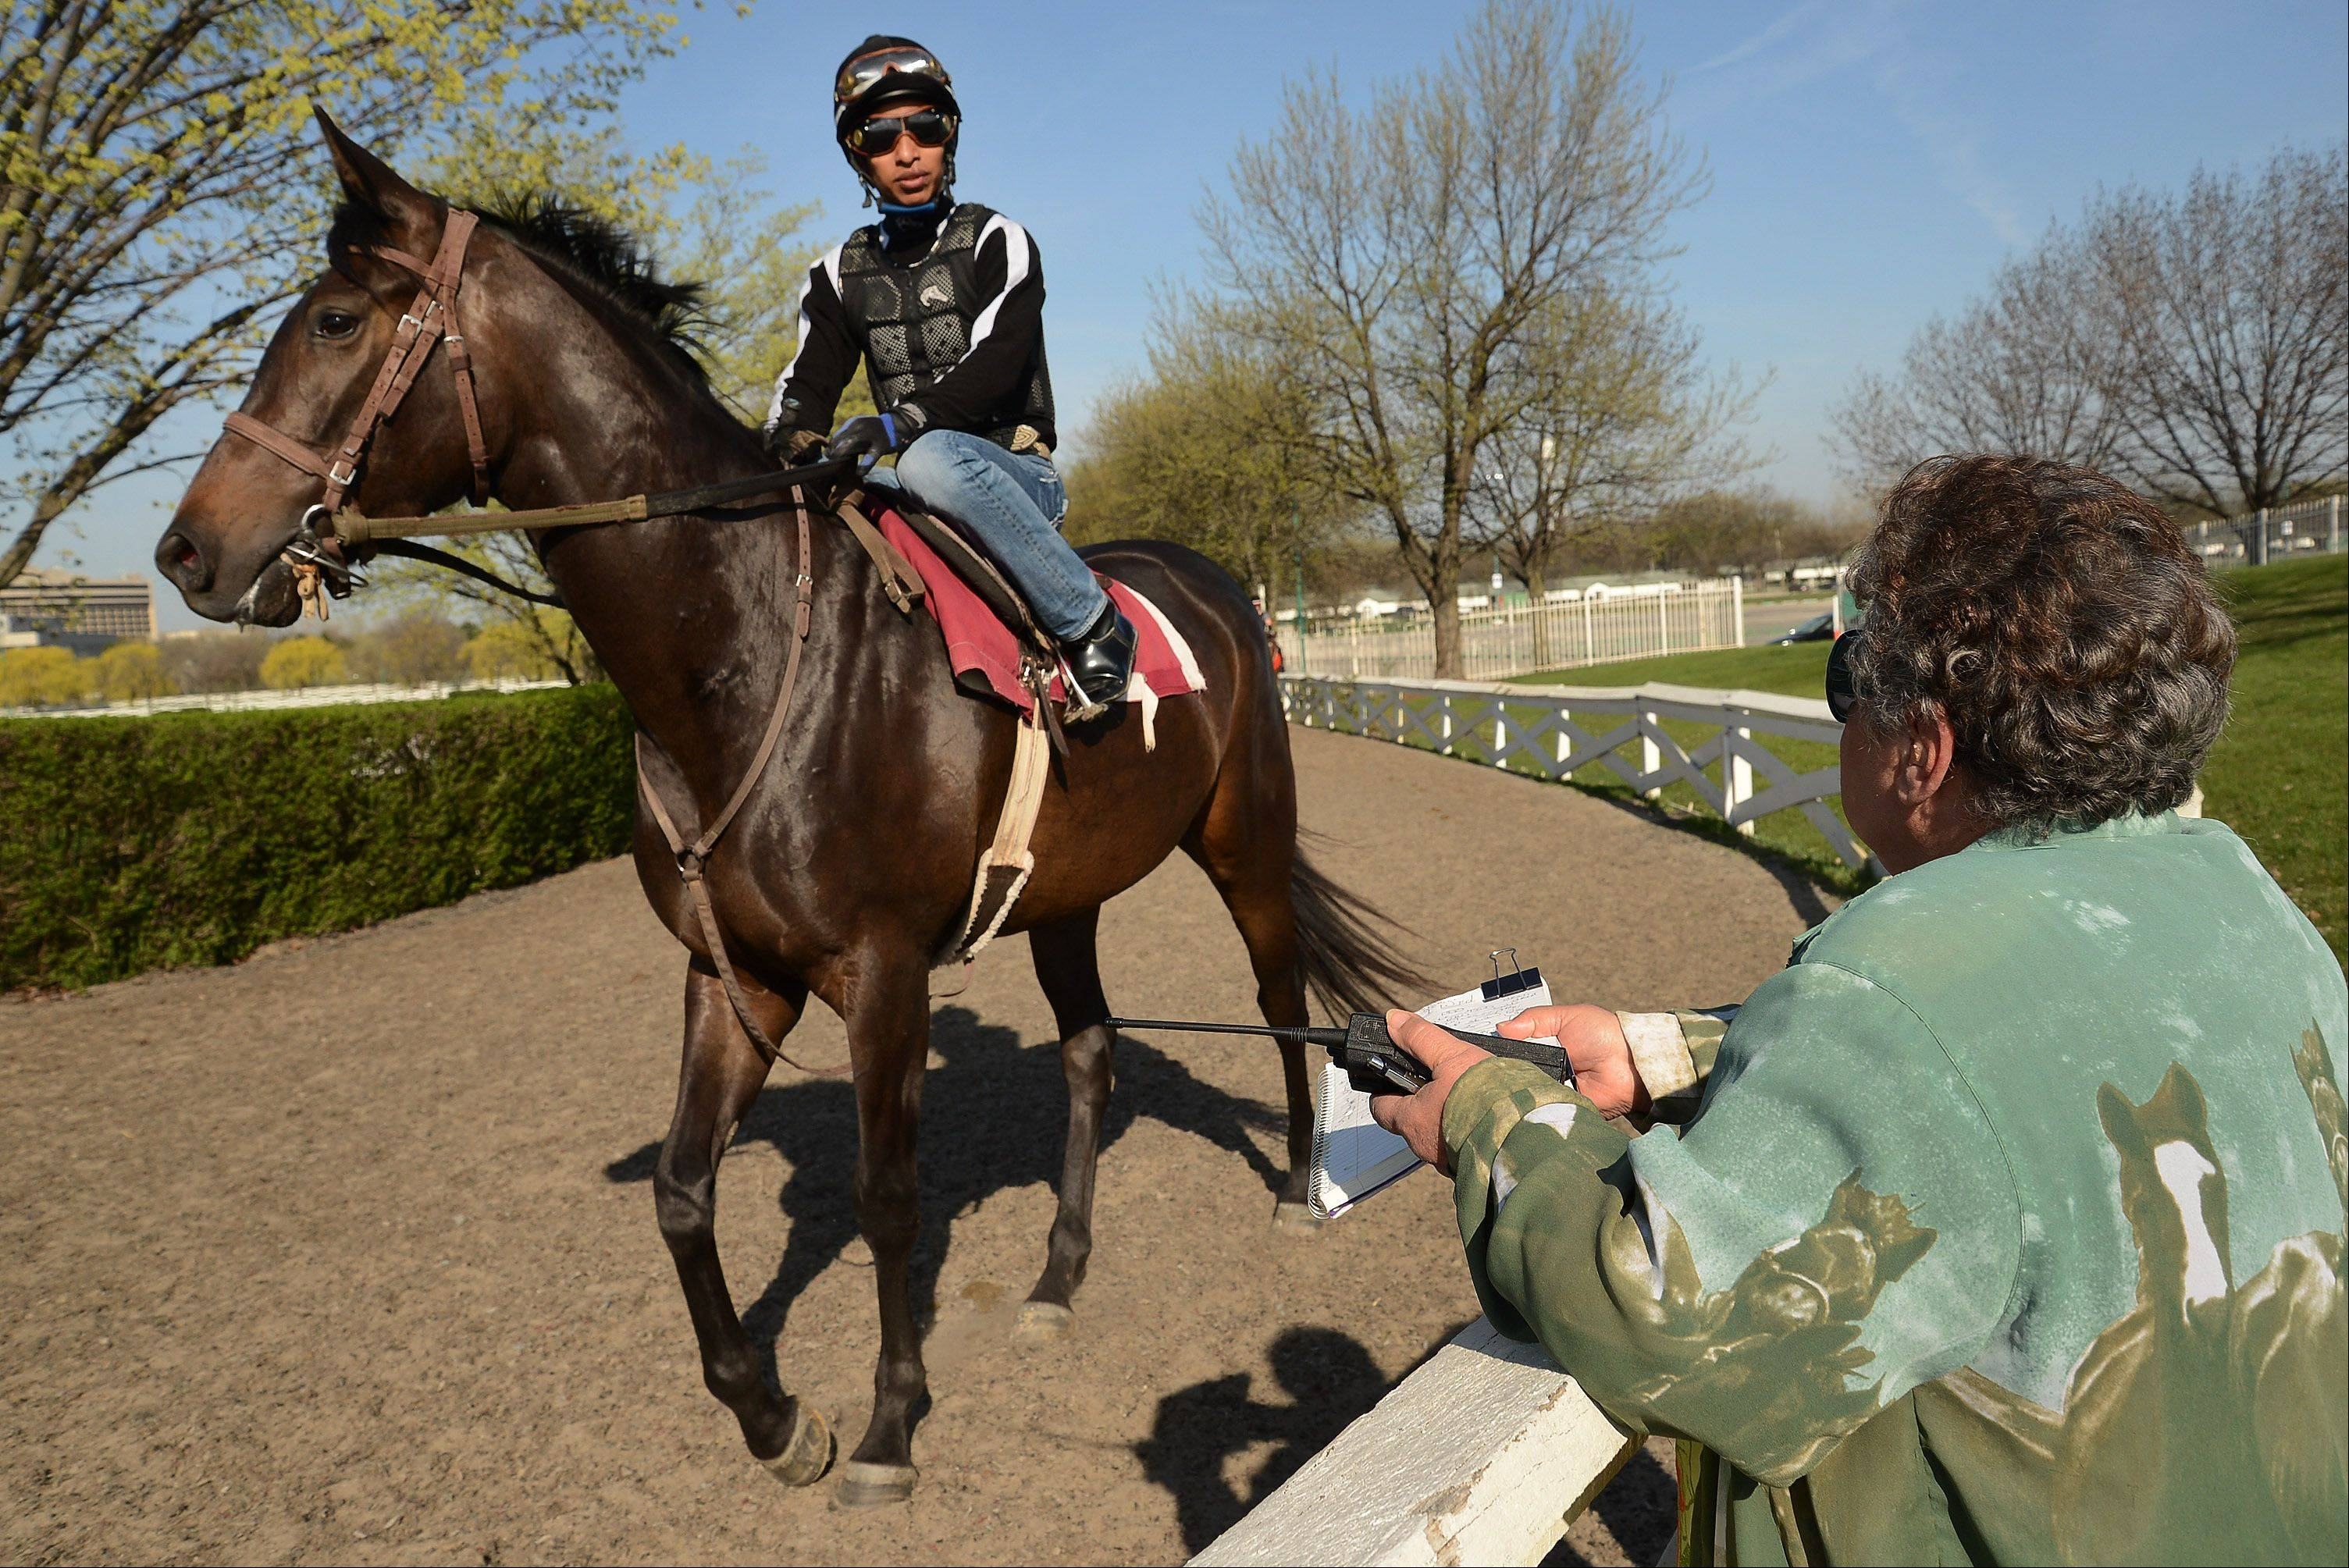 Spotter Gina Pantano checks in a horse on its way to the track in preparation for opening day at Arlington International Racecourse.